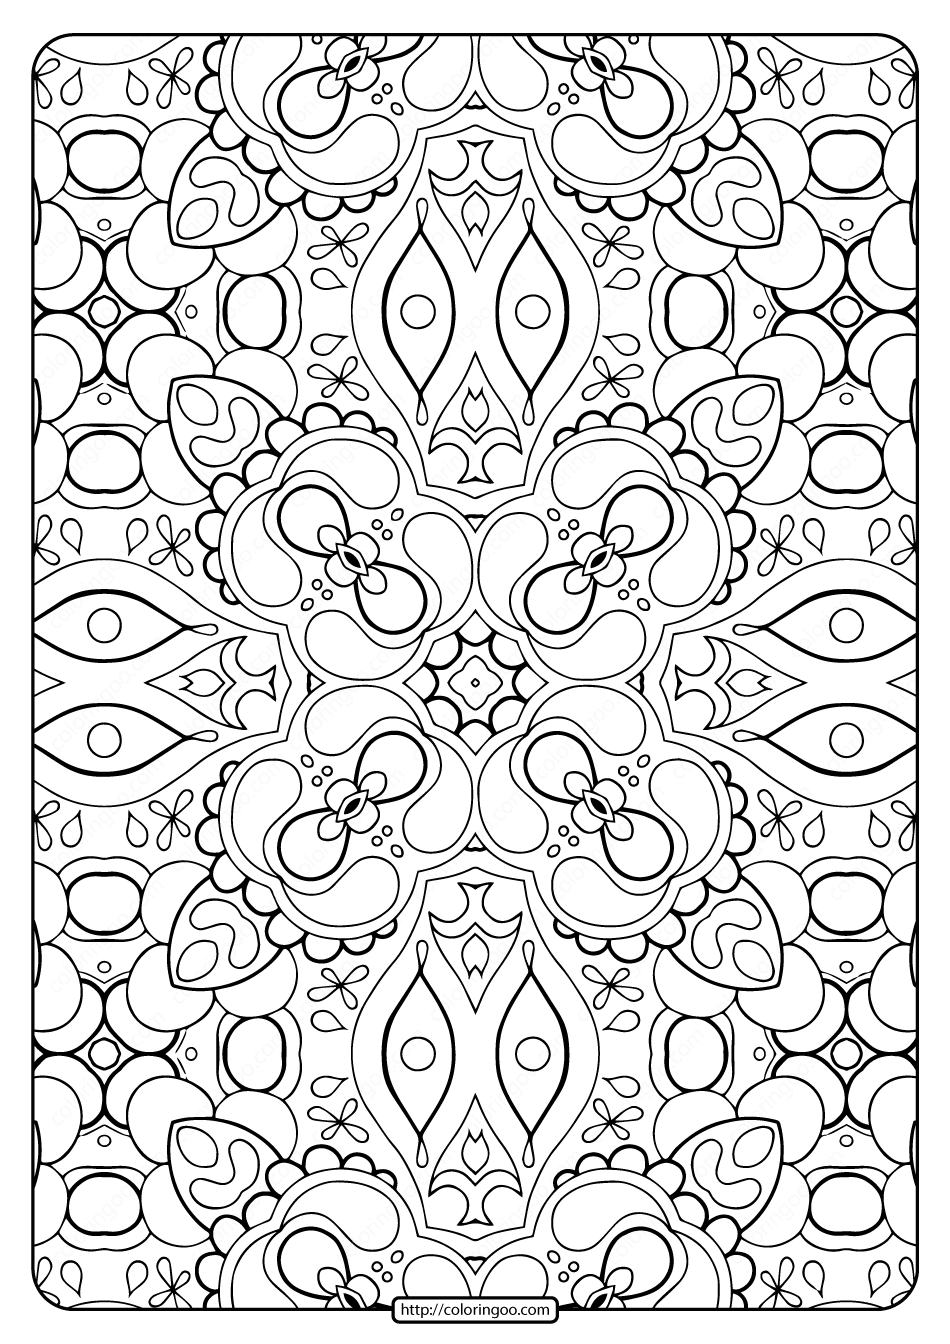 free printable design coloring pages printable abstract pattern adult coloring pages 01 design pages coloring printable free